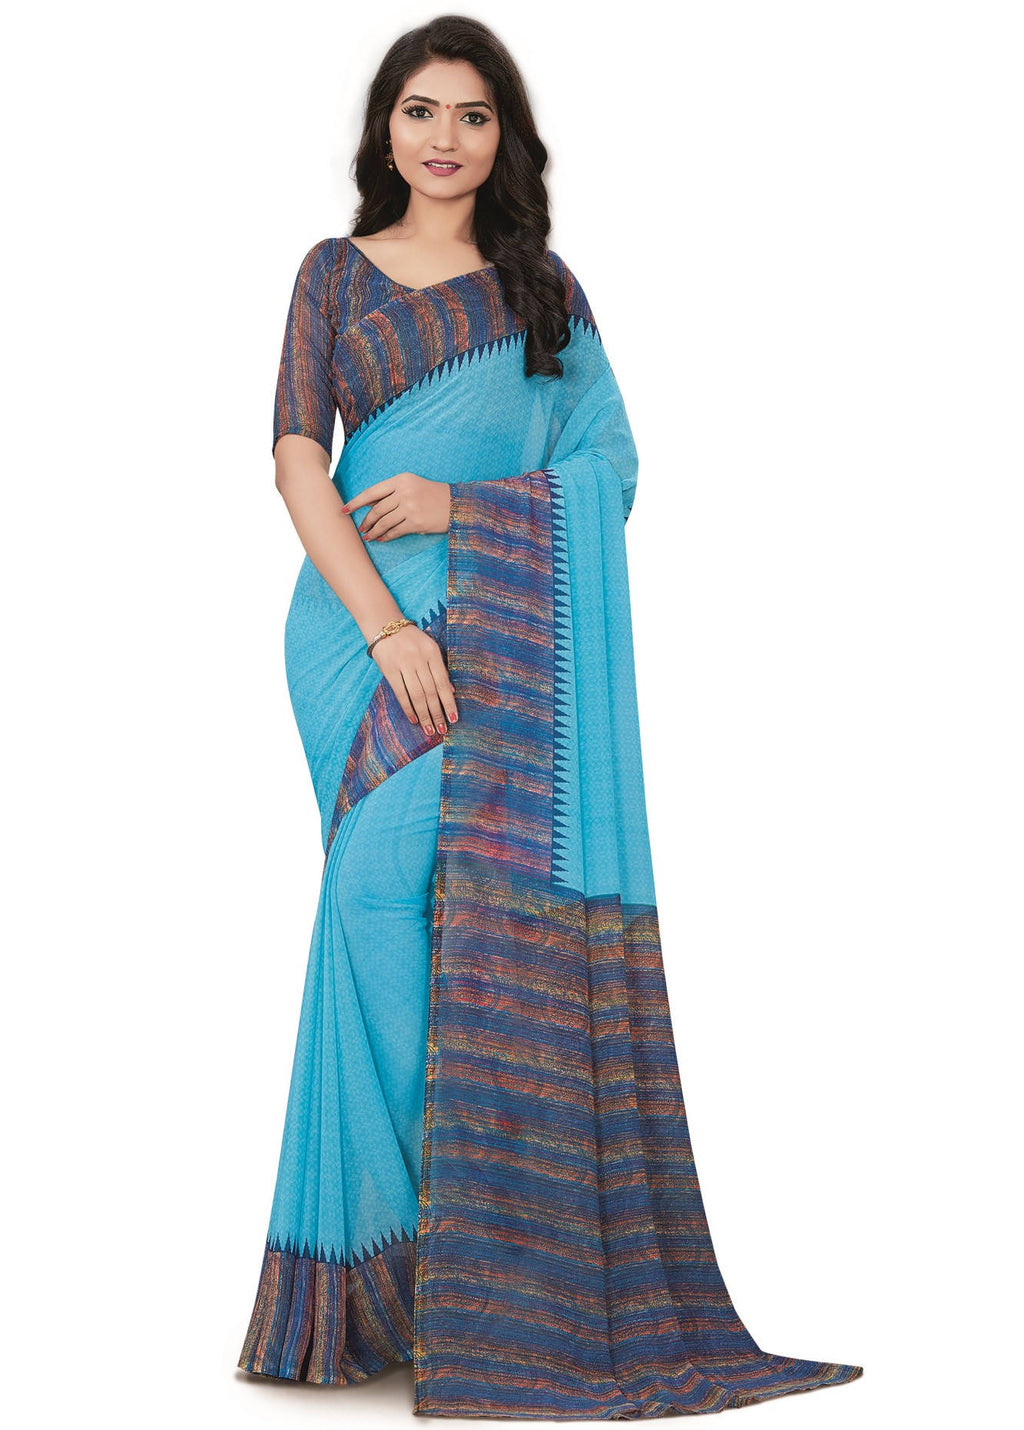 Aqua Blue Color Bember Georgette Printed Office Wear Sarees NYF-7651